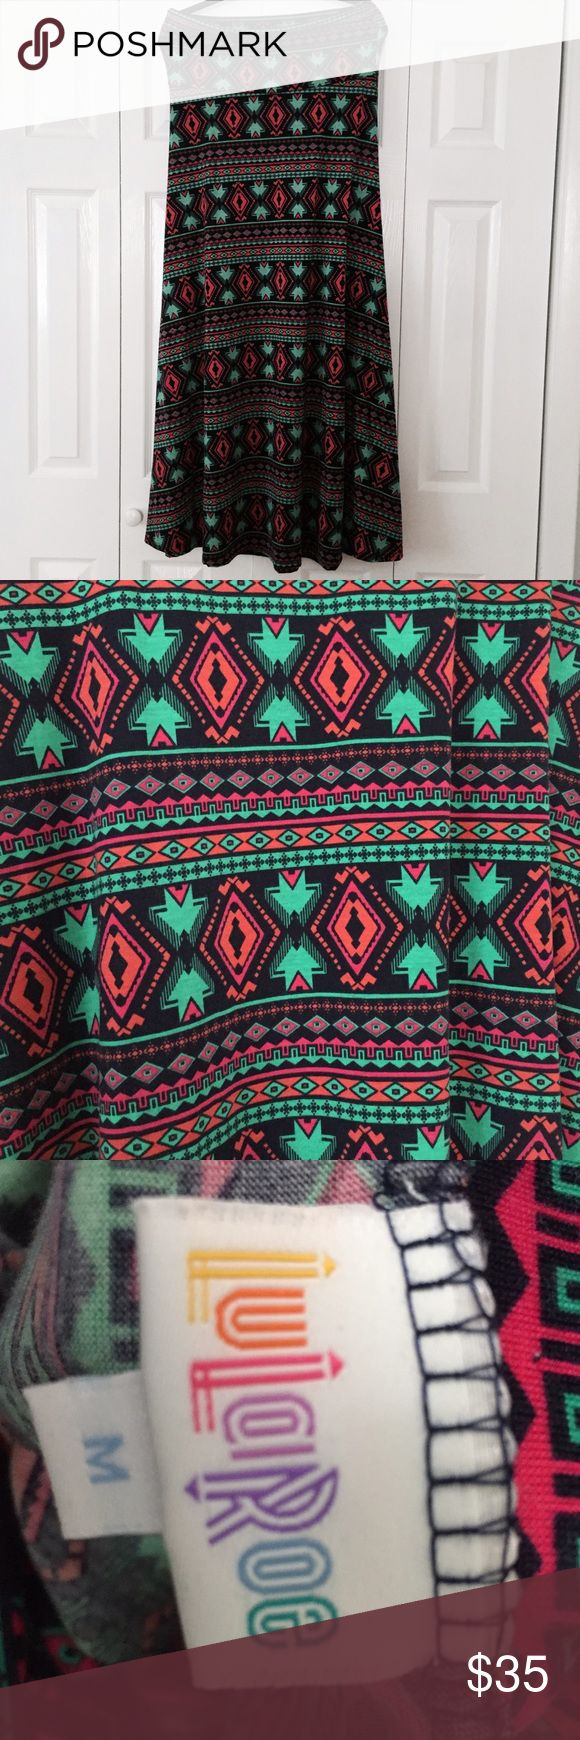 Aztec Print Long Maxi Skirt Dress LulaRoe Medium Beautiful Aztec inspired geometric print maxi skirt that can also be worn as a dress by LulaRoe. Stretchy, legging-like material. Colors are navy, pink, coral and green. Size medium. Worn and washed once. LuLaRoe Skirts Maxi